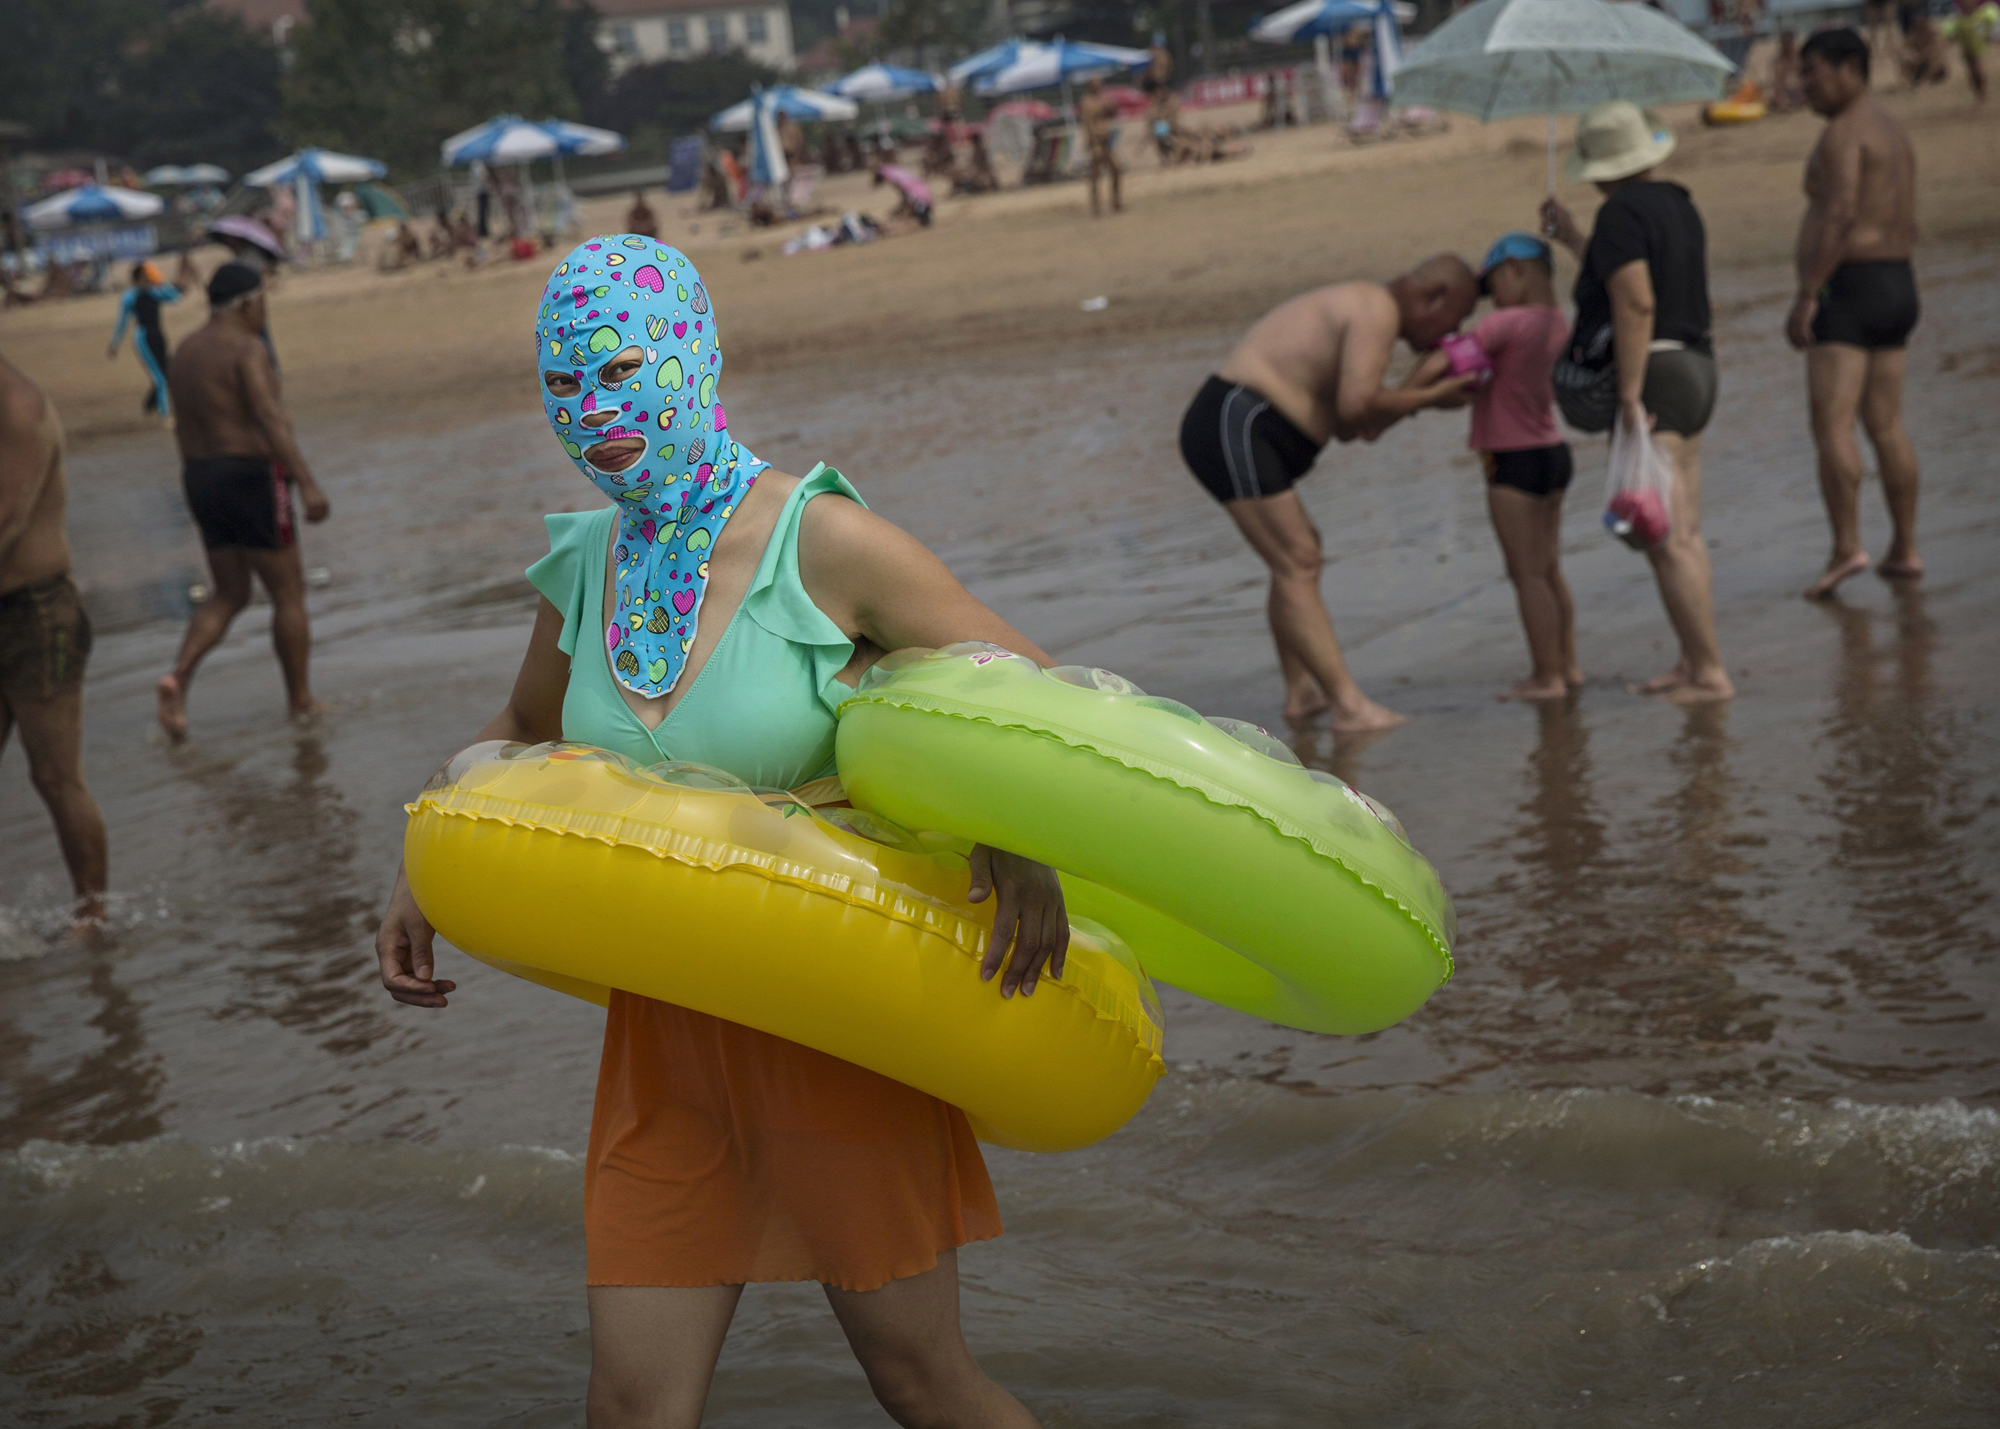 A woman wears a facekini as she walks into the water to swim on the beach on Aug. 22, 2014, on the Yellow Sea in Qingdao.